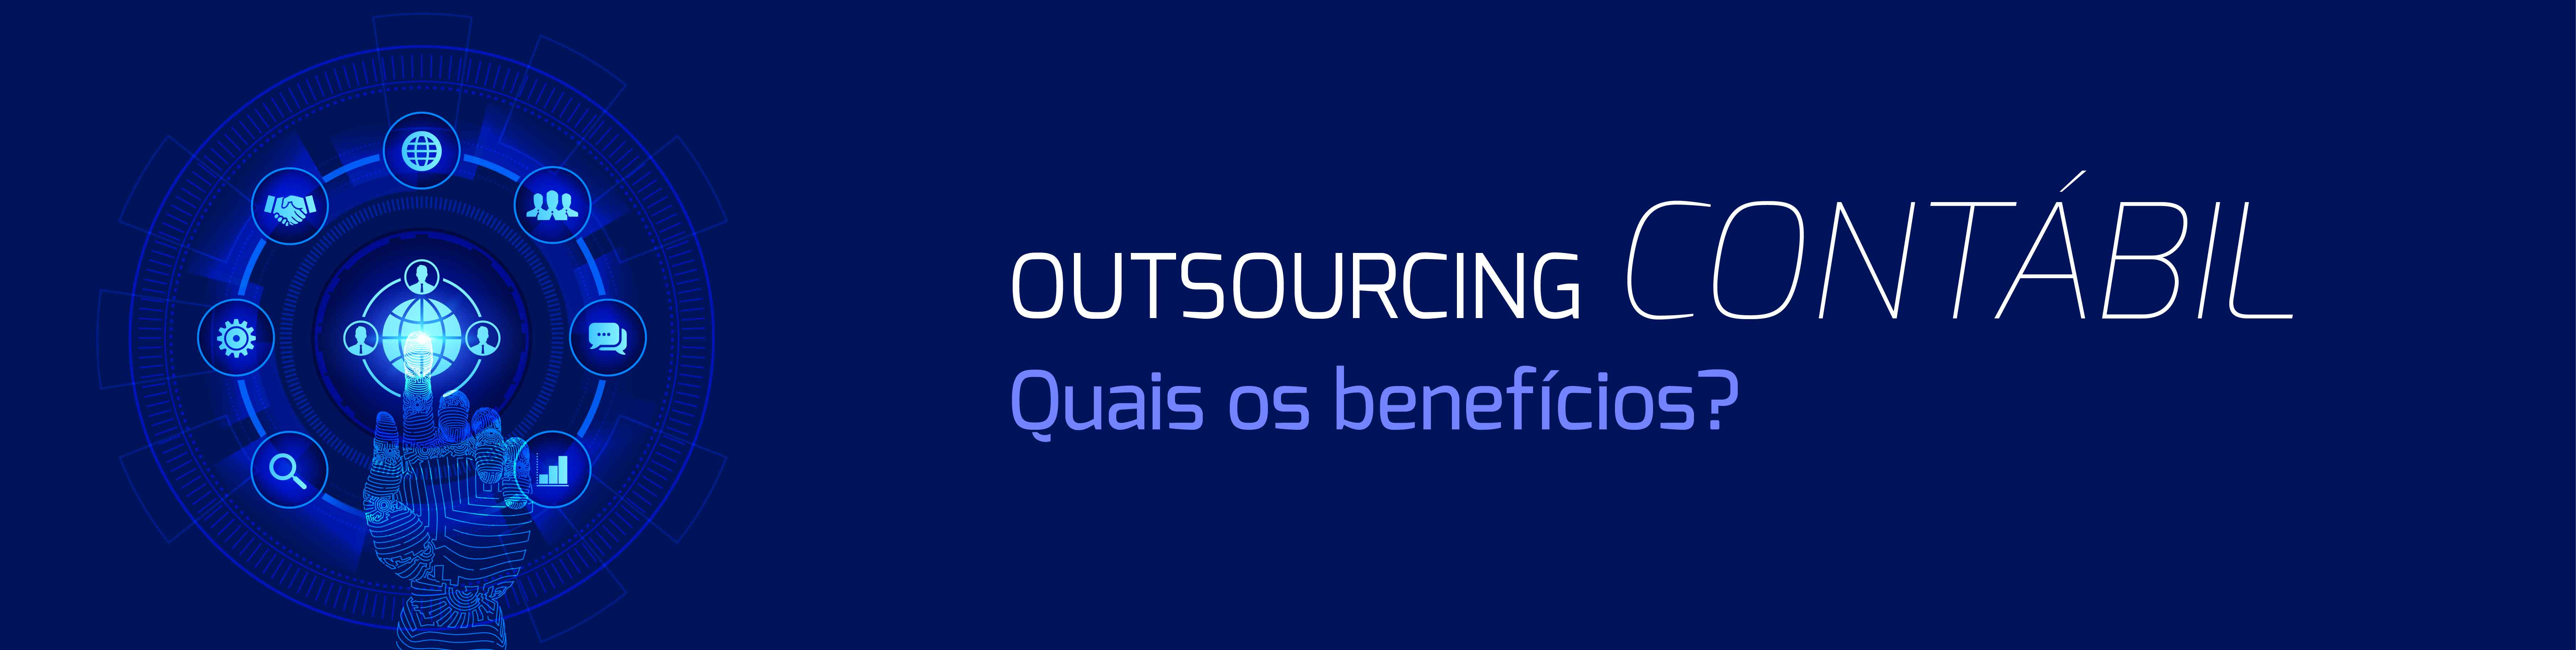 Outsourcing Contábil